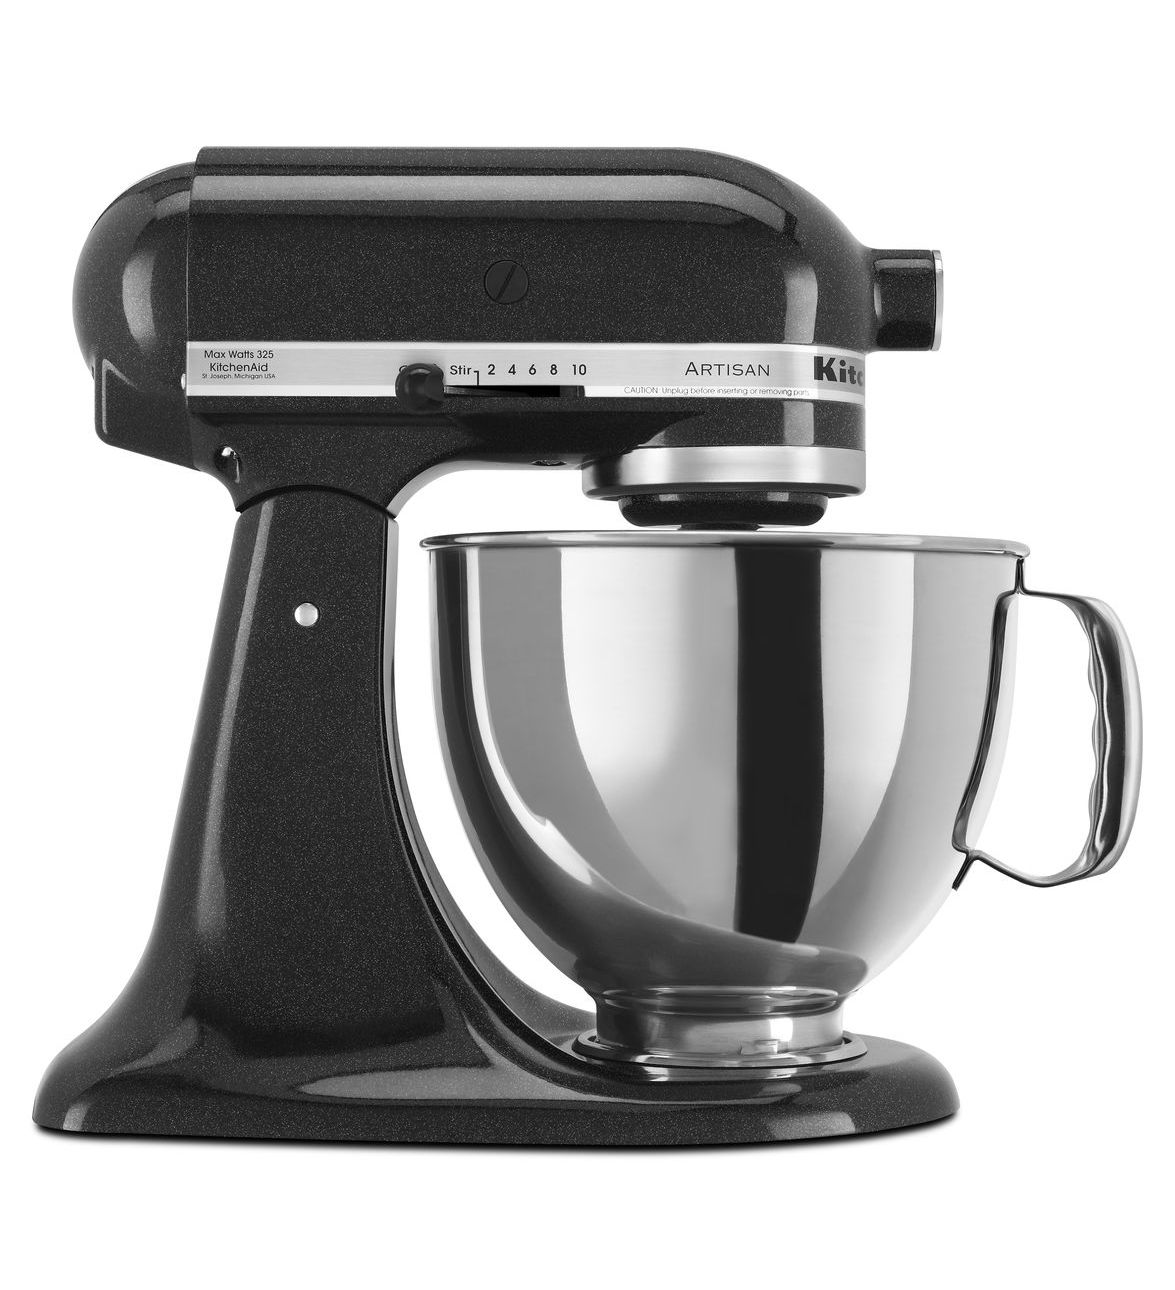 KitchenAid-Refurbished-Artisan-Series-5-Quart-Tilt-Head-Stand-Mixer-RRK150 thumbnail 31